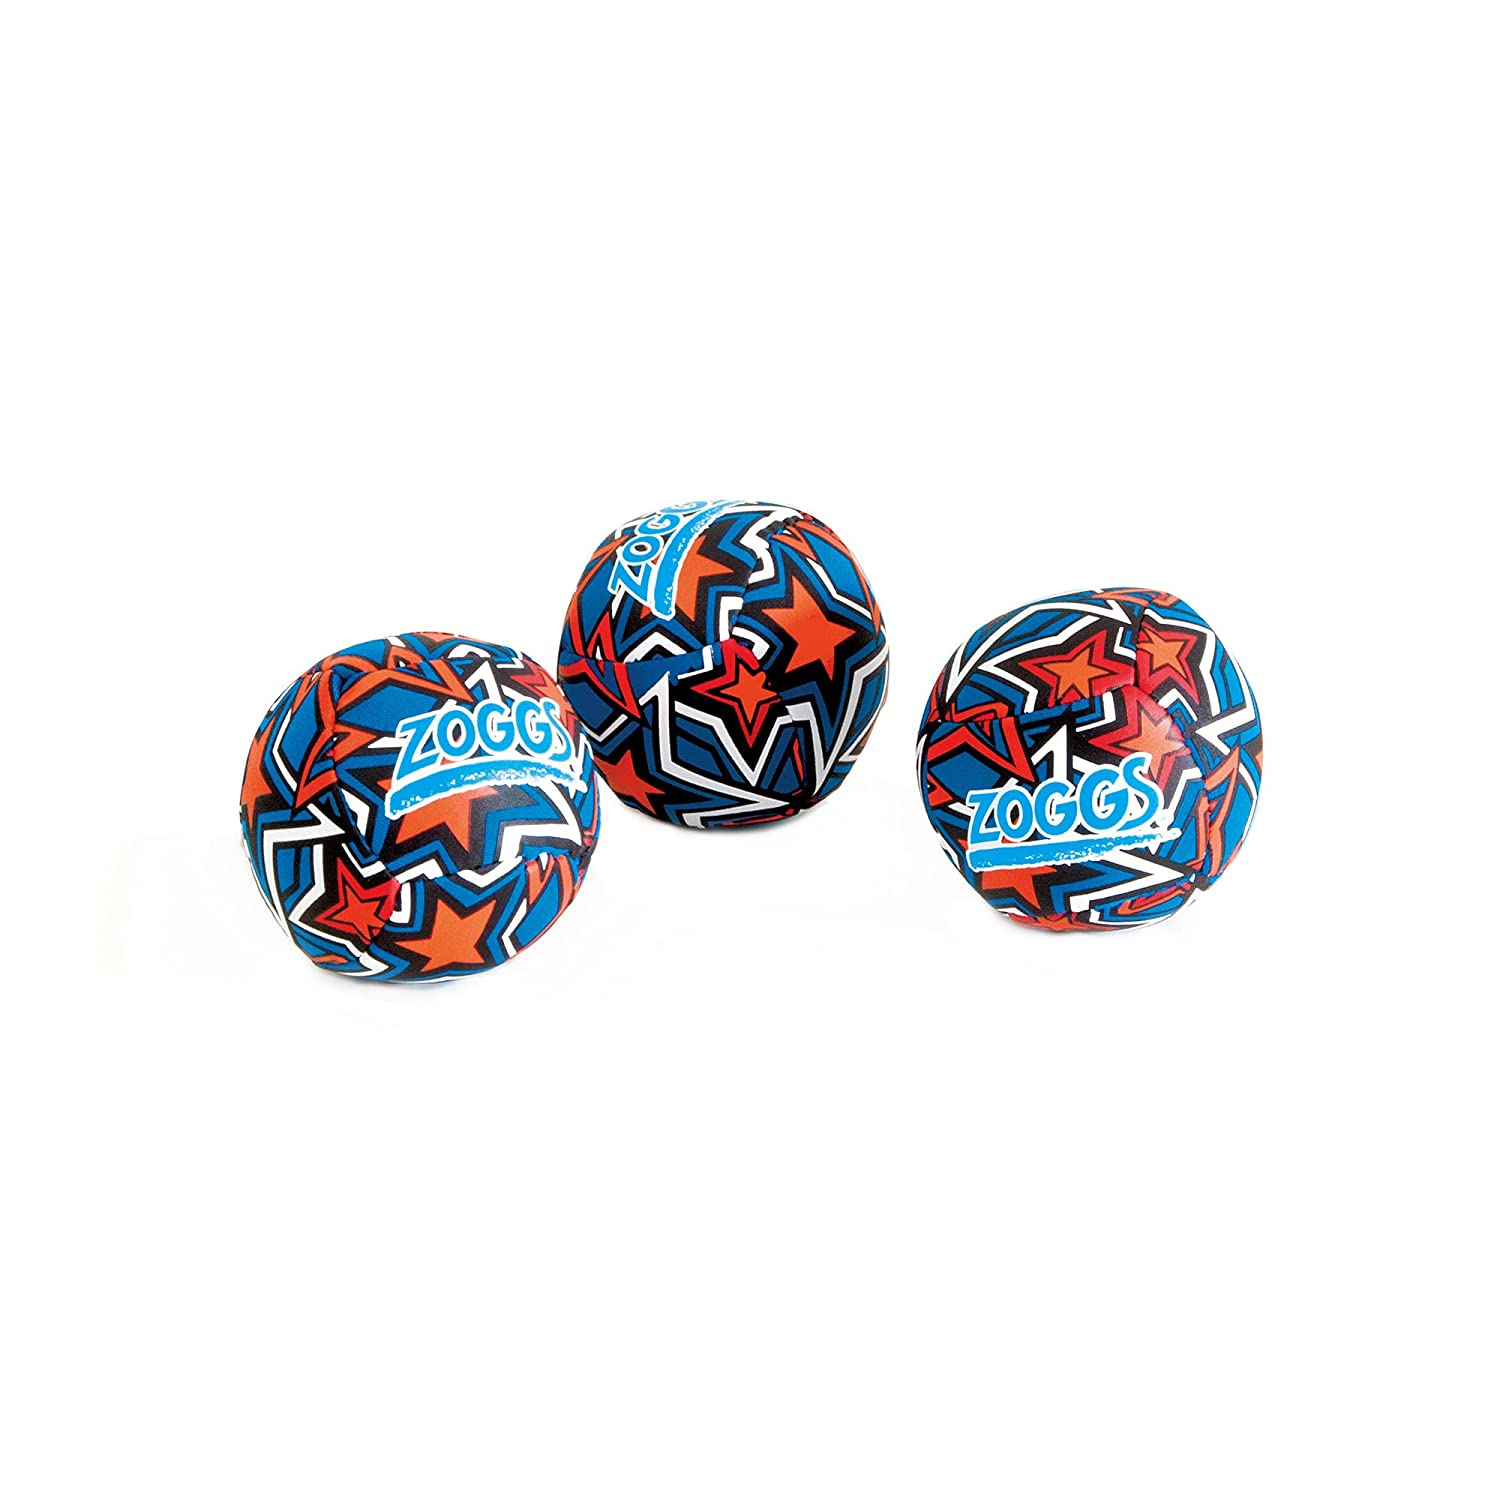 Zoggs Kids Water Friendly Splash Neoprene Covered Balls - Orange/Blue with Star Print